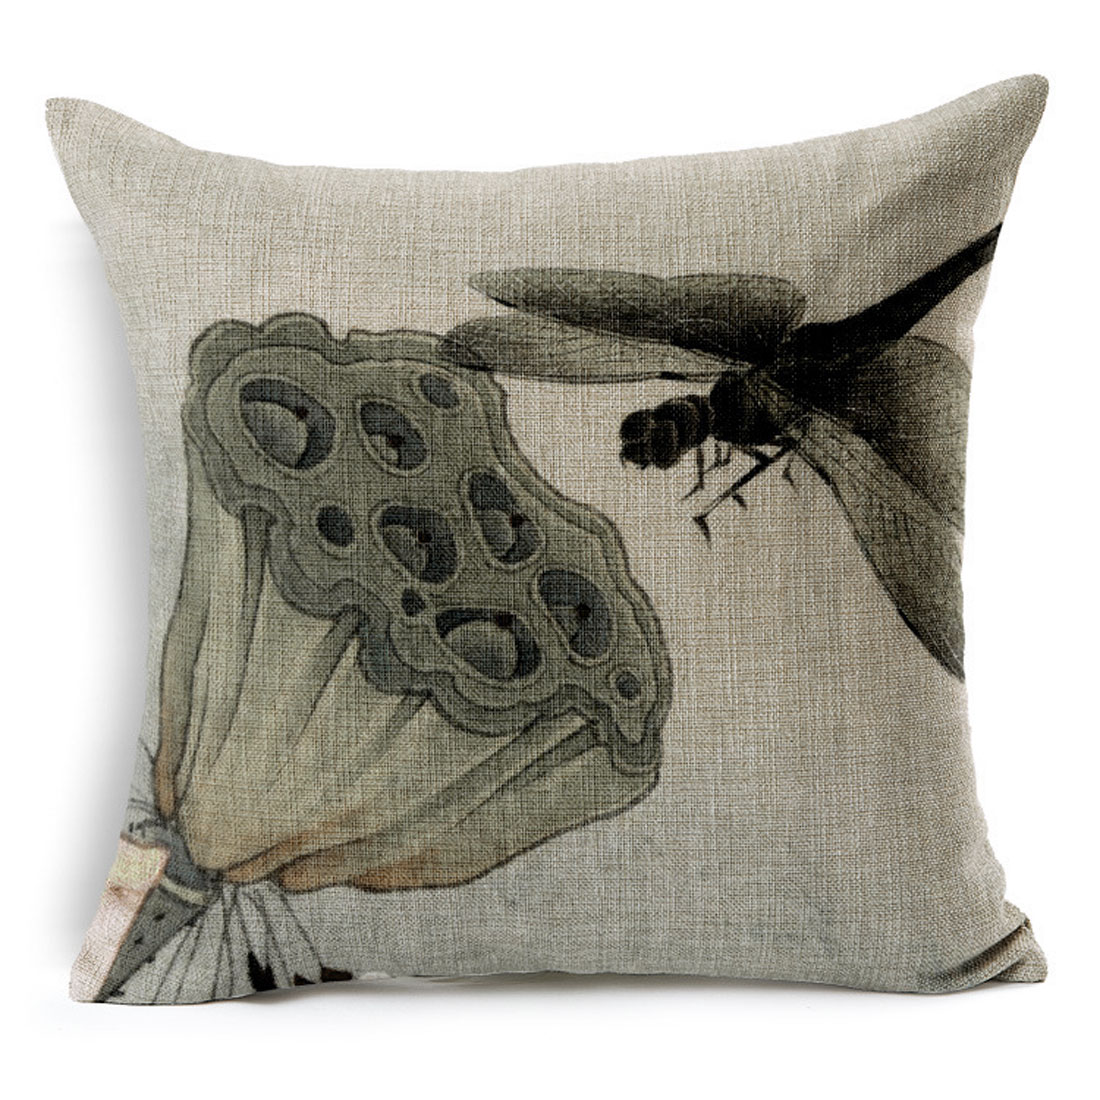 Home Sofa Cotton Linen Lotus Root Pattern Chinoiserie Waist Throw Cushion Pillow Cover